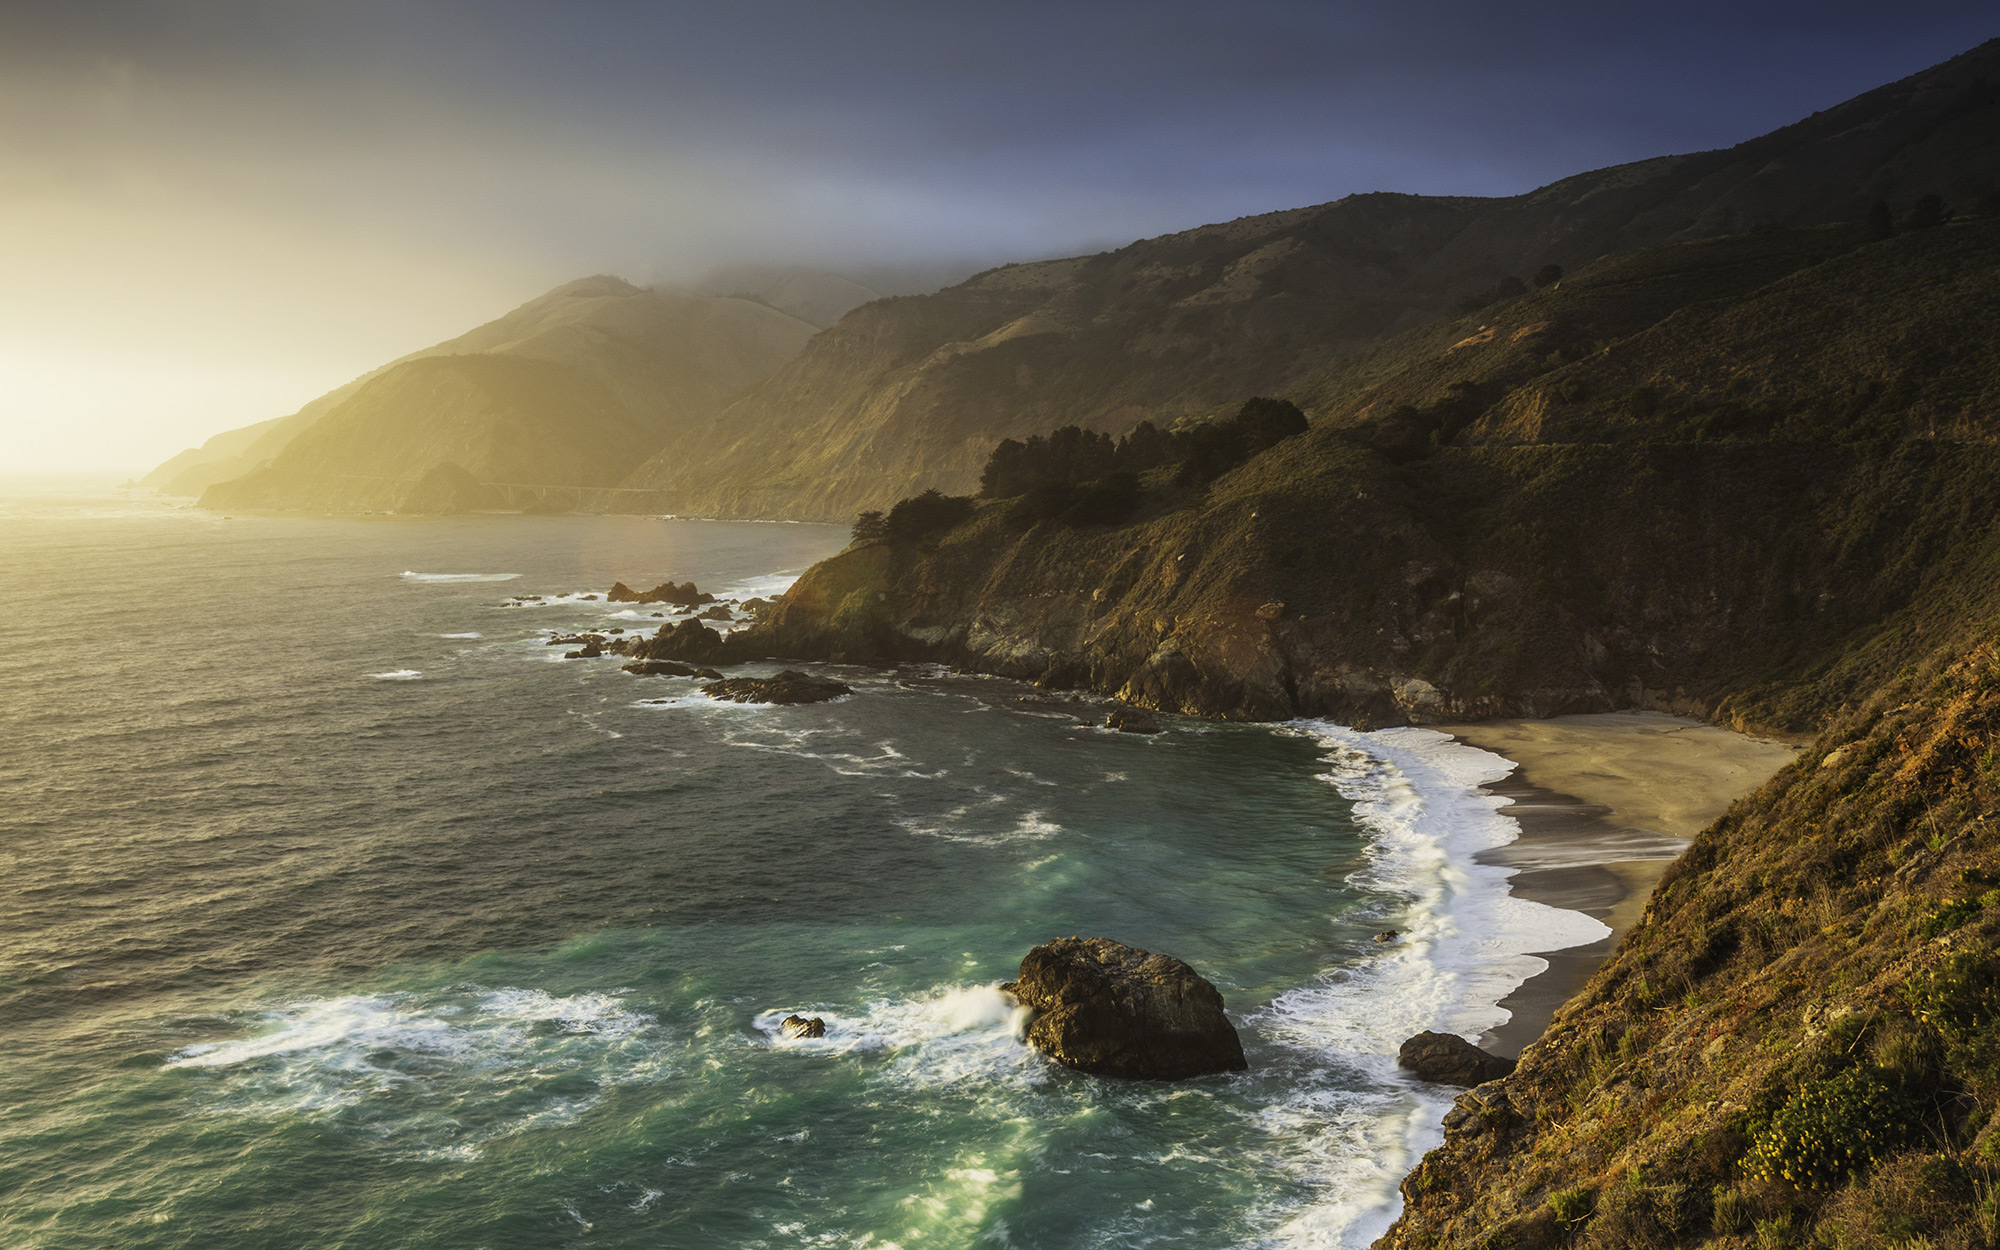 Overlooking Big Sur, California